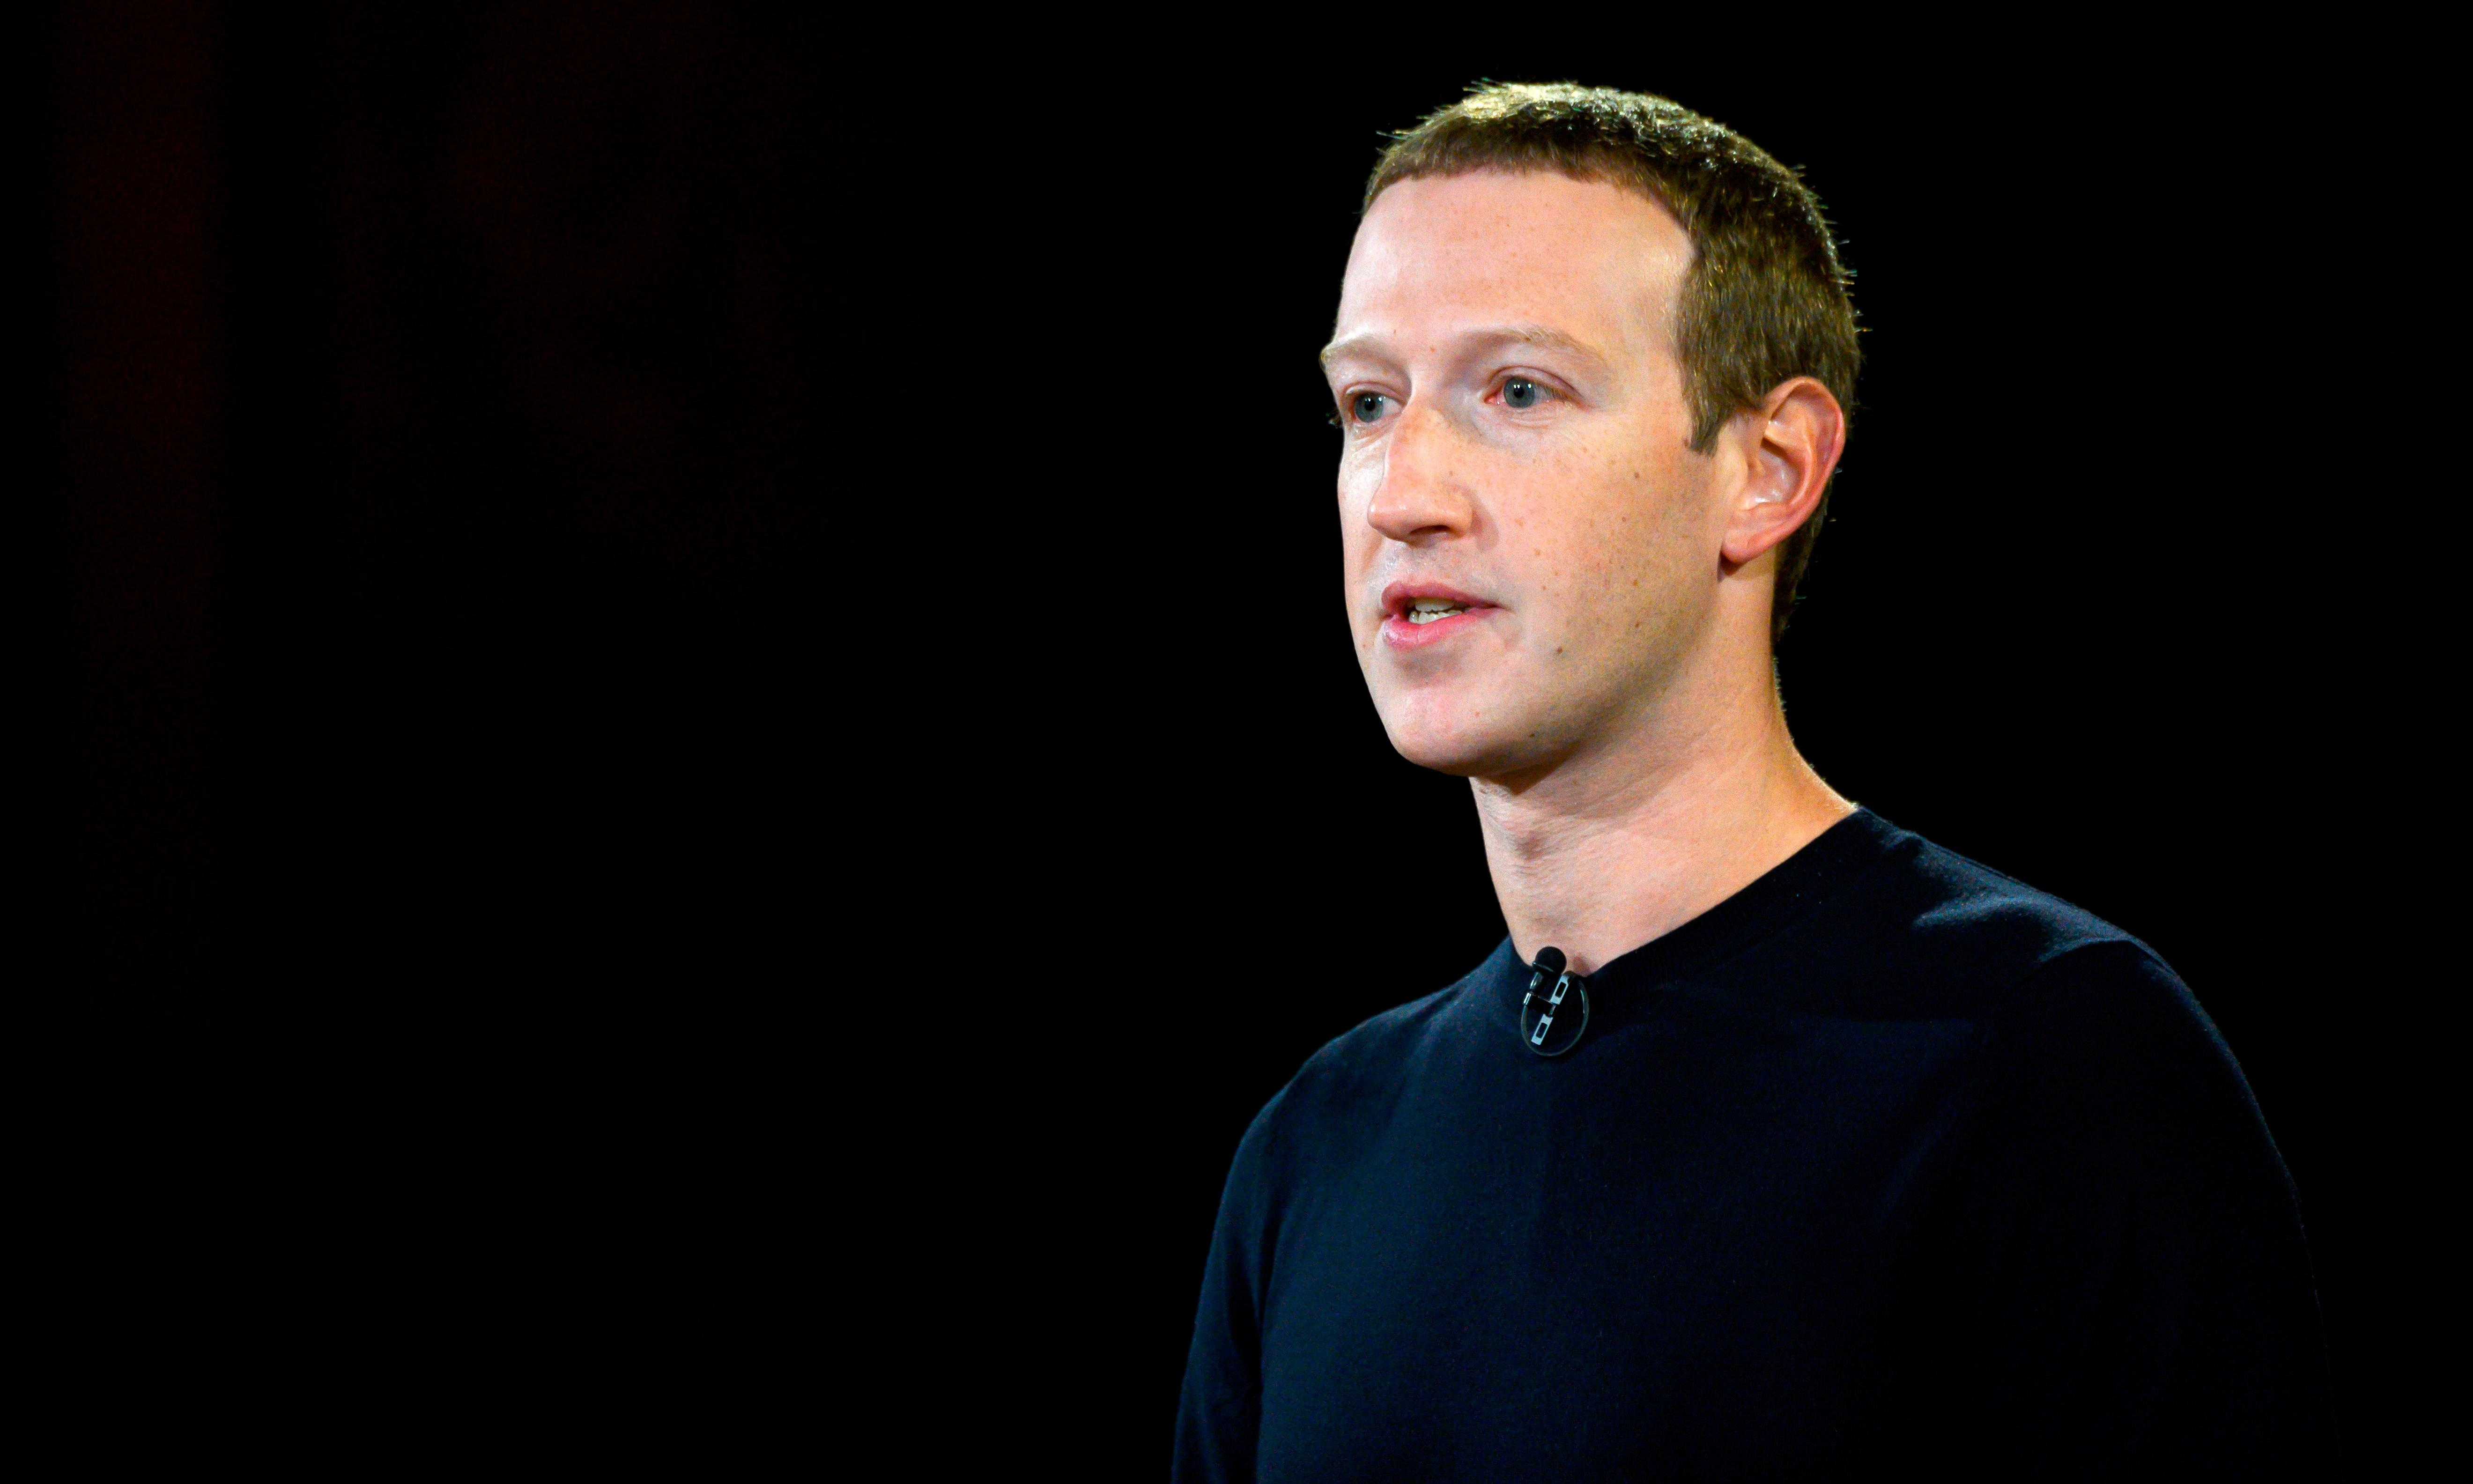 Facebook discloses operations by Russia and Iran to meddle in 2020 election